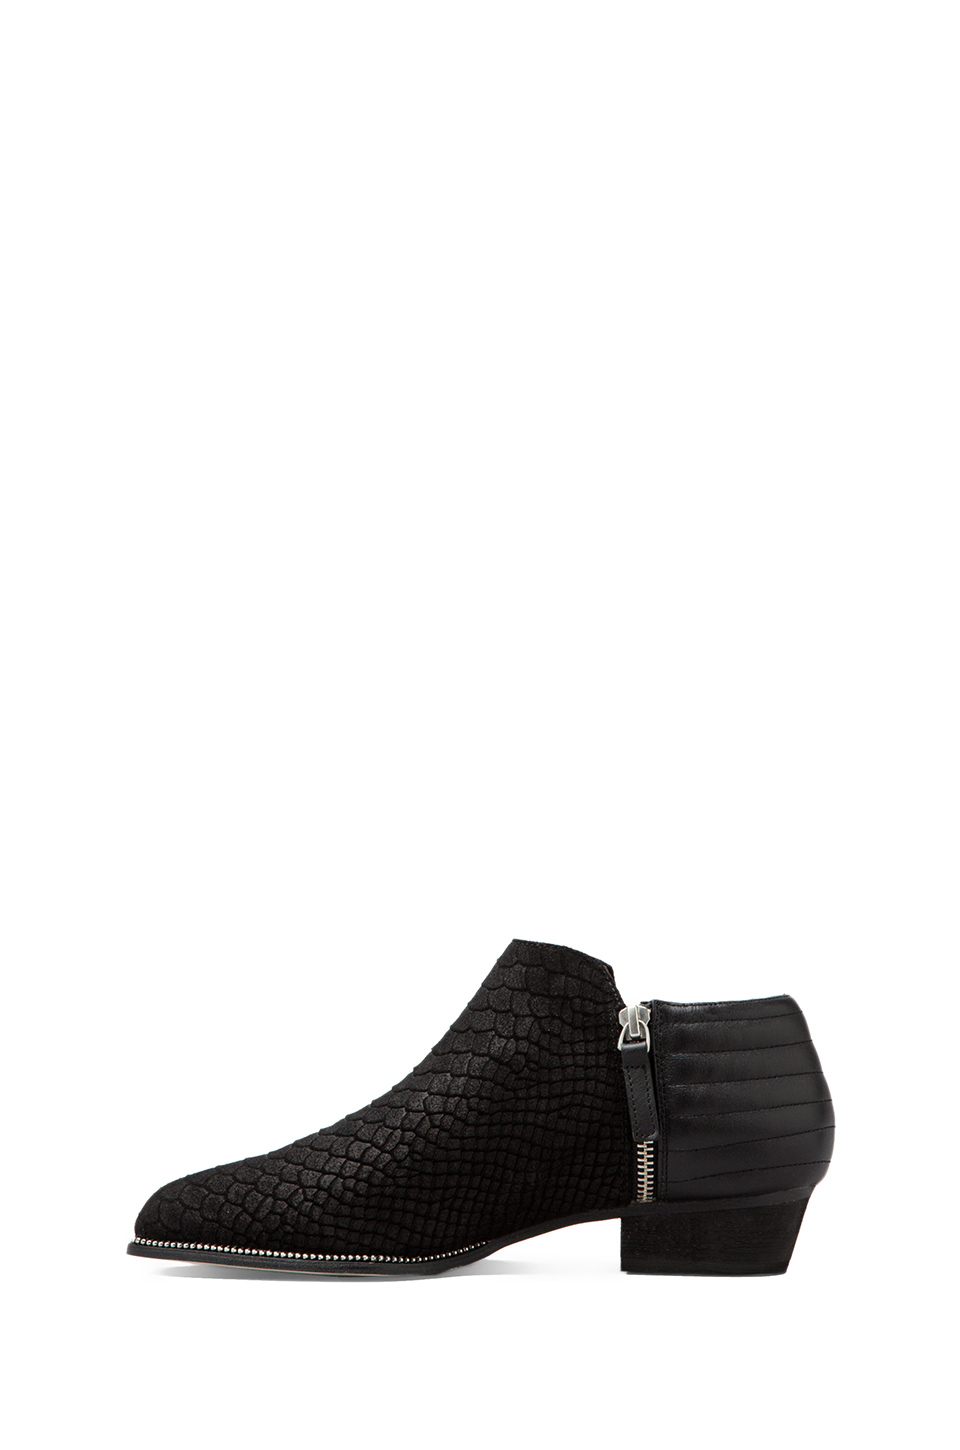 SENSO Britney V Boot in Black | REVOLVE